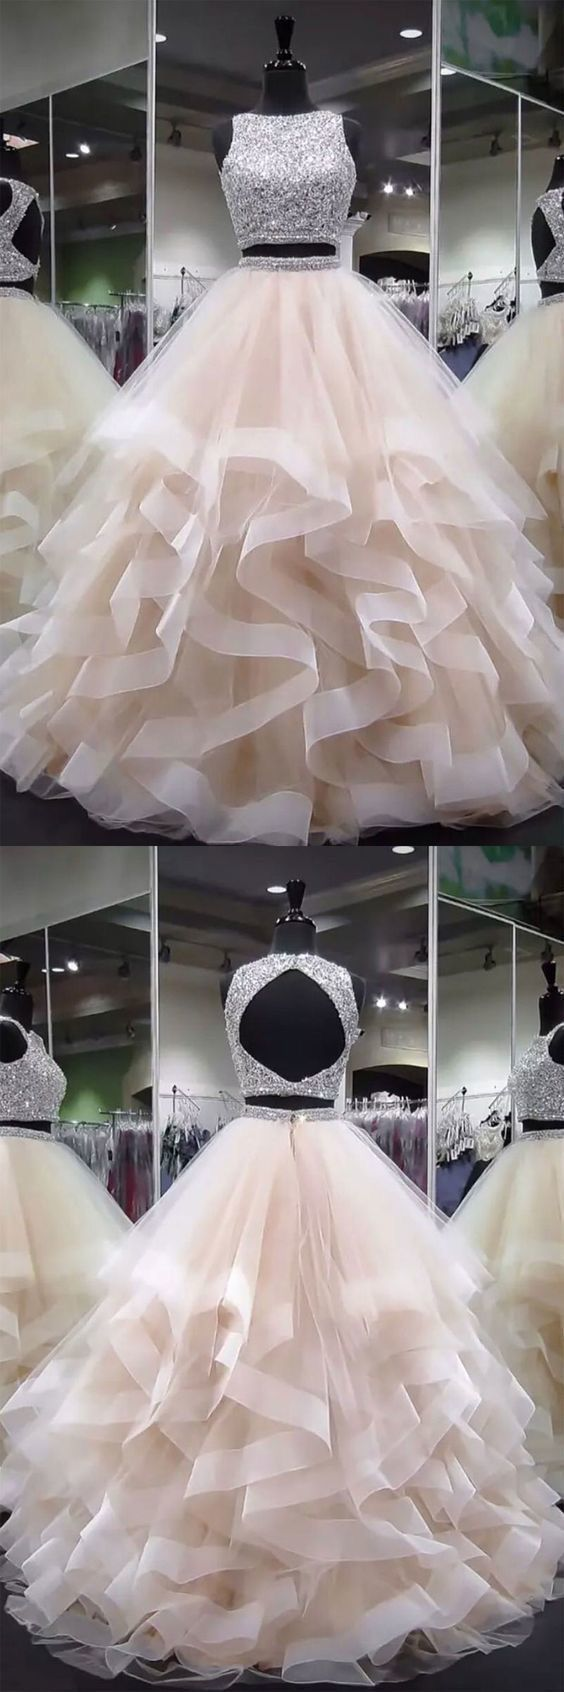 Two piece prom dresses,ball gowns prom dresses,champagne prom dress, prom dresses 2019 2